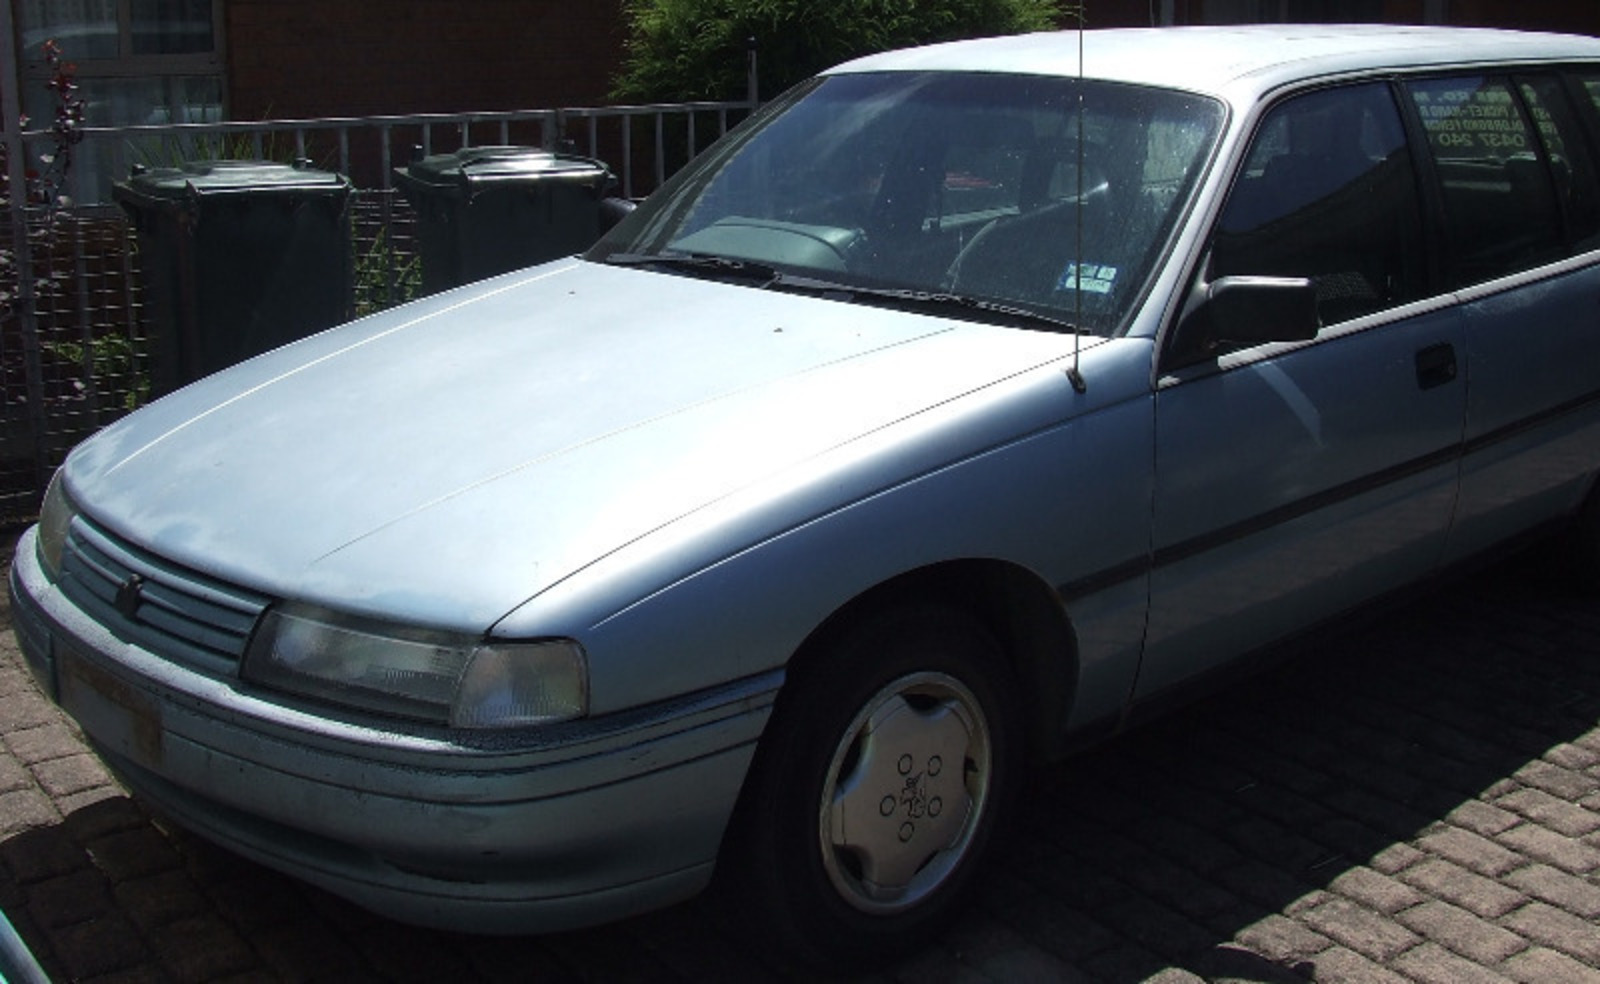 1990 Holden Commodore Wagon vn. $700.00. Trafalgar VIC 3824 view on map